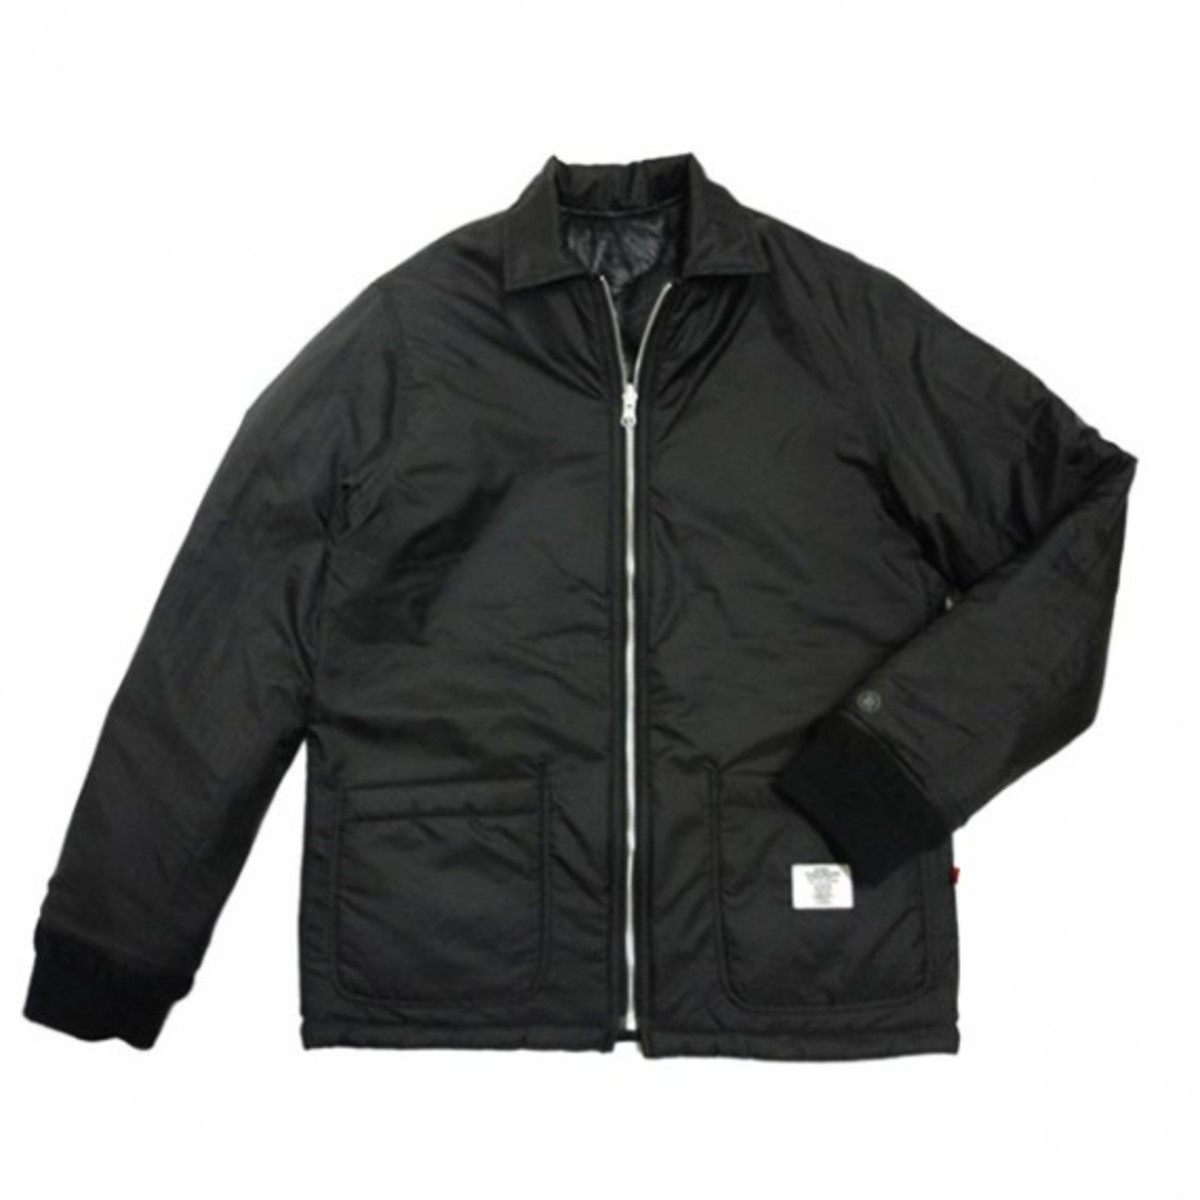 joey-quilting-jacket-black-02